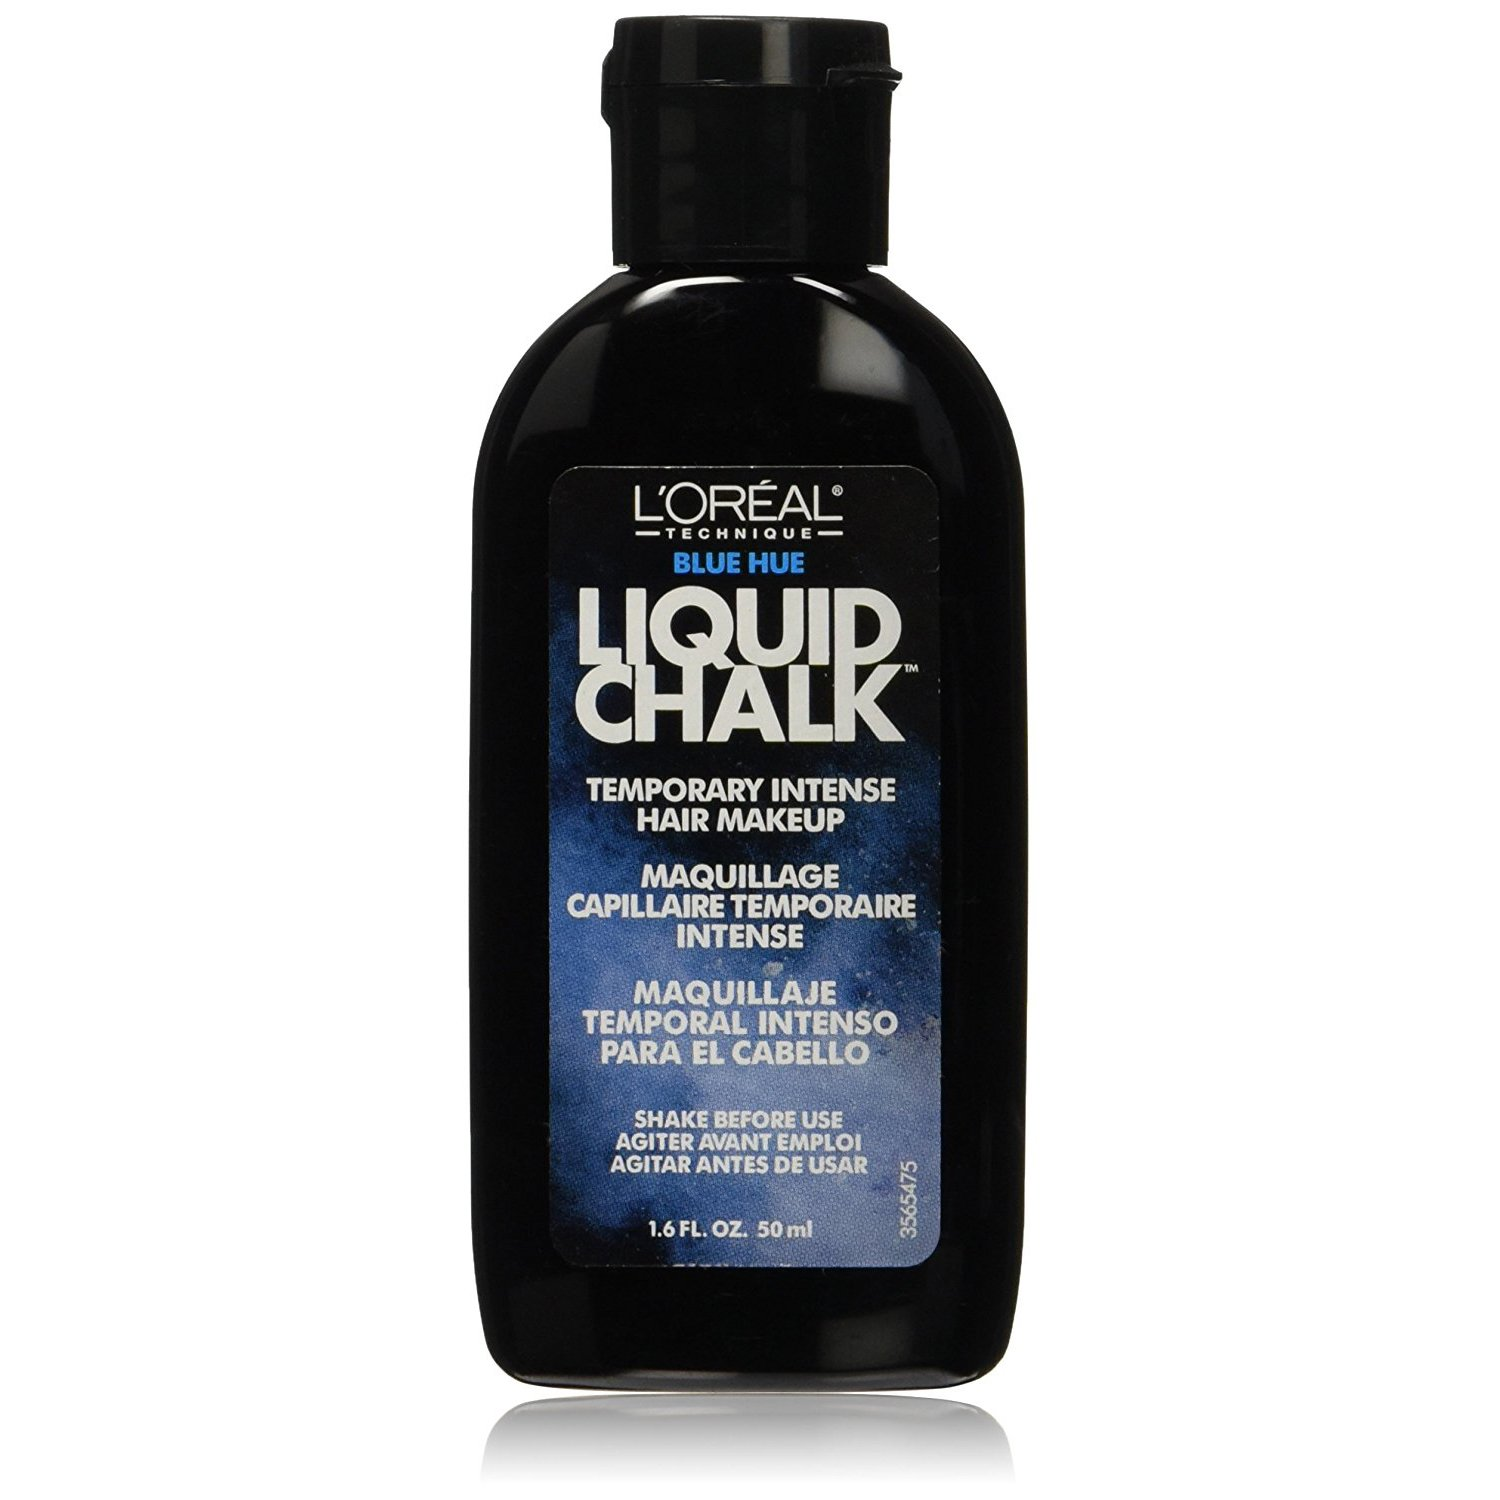 Loreal Liquid Chalk Hair Makeup - Blue Hue 1.6oz